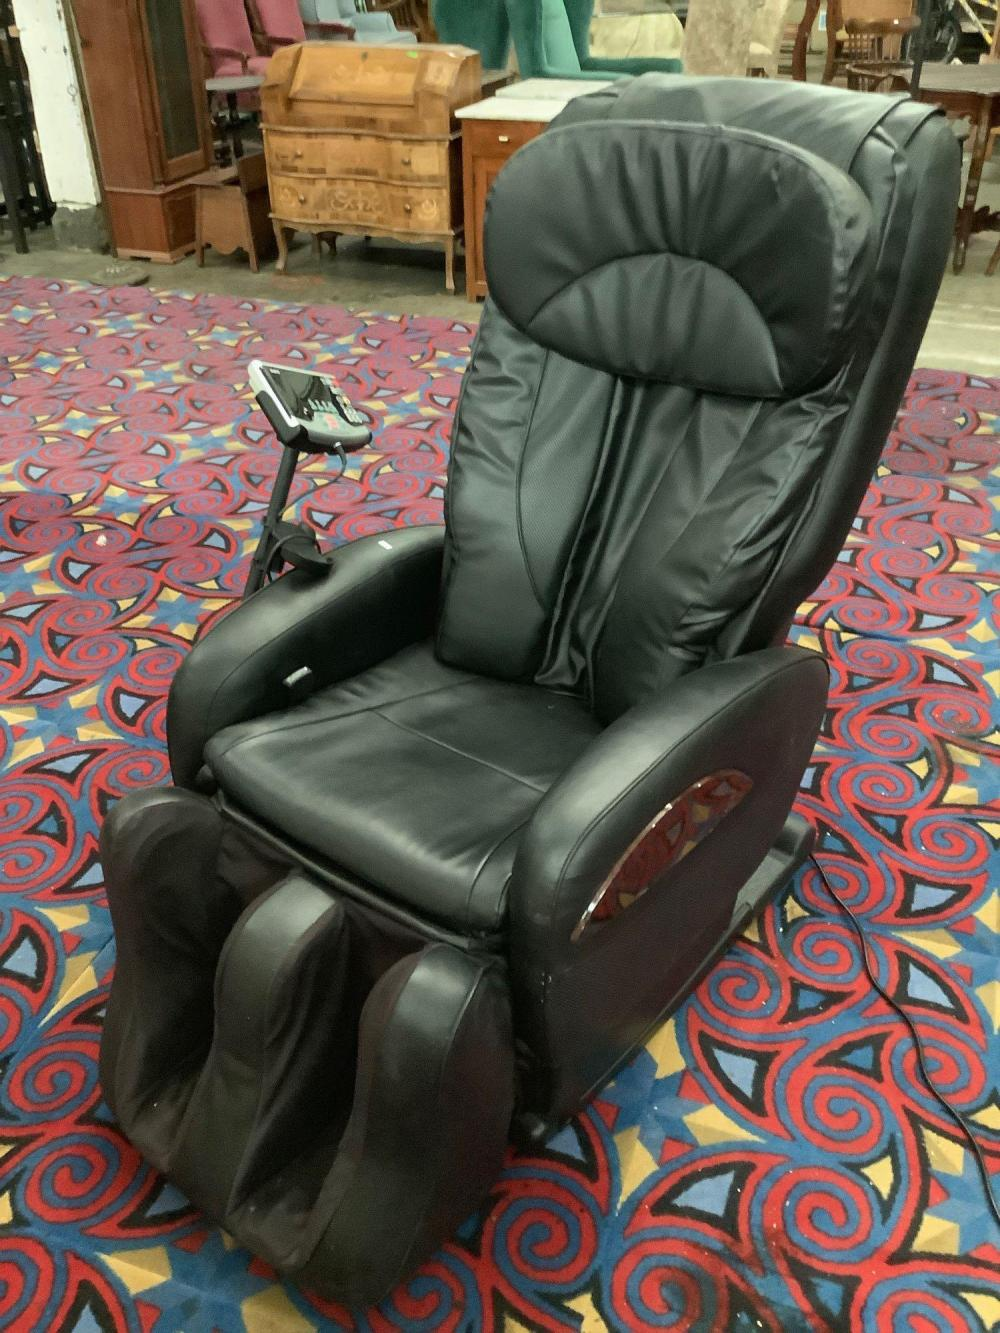 Sanyo electric massage lounger chair , model no. HEC-DR7700K